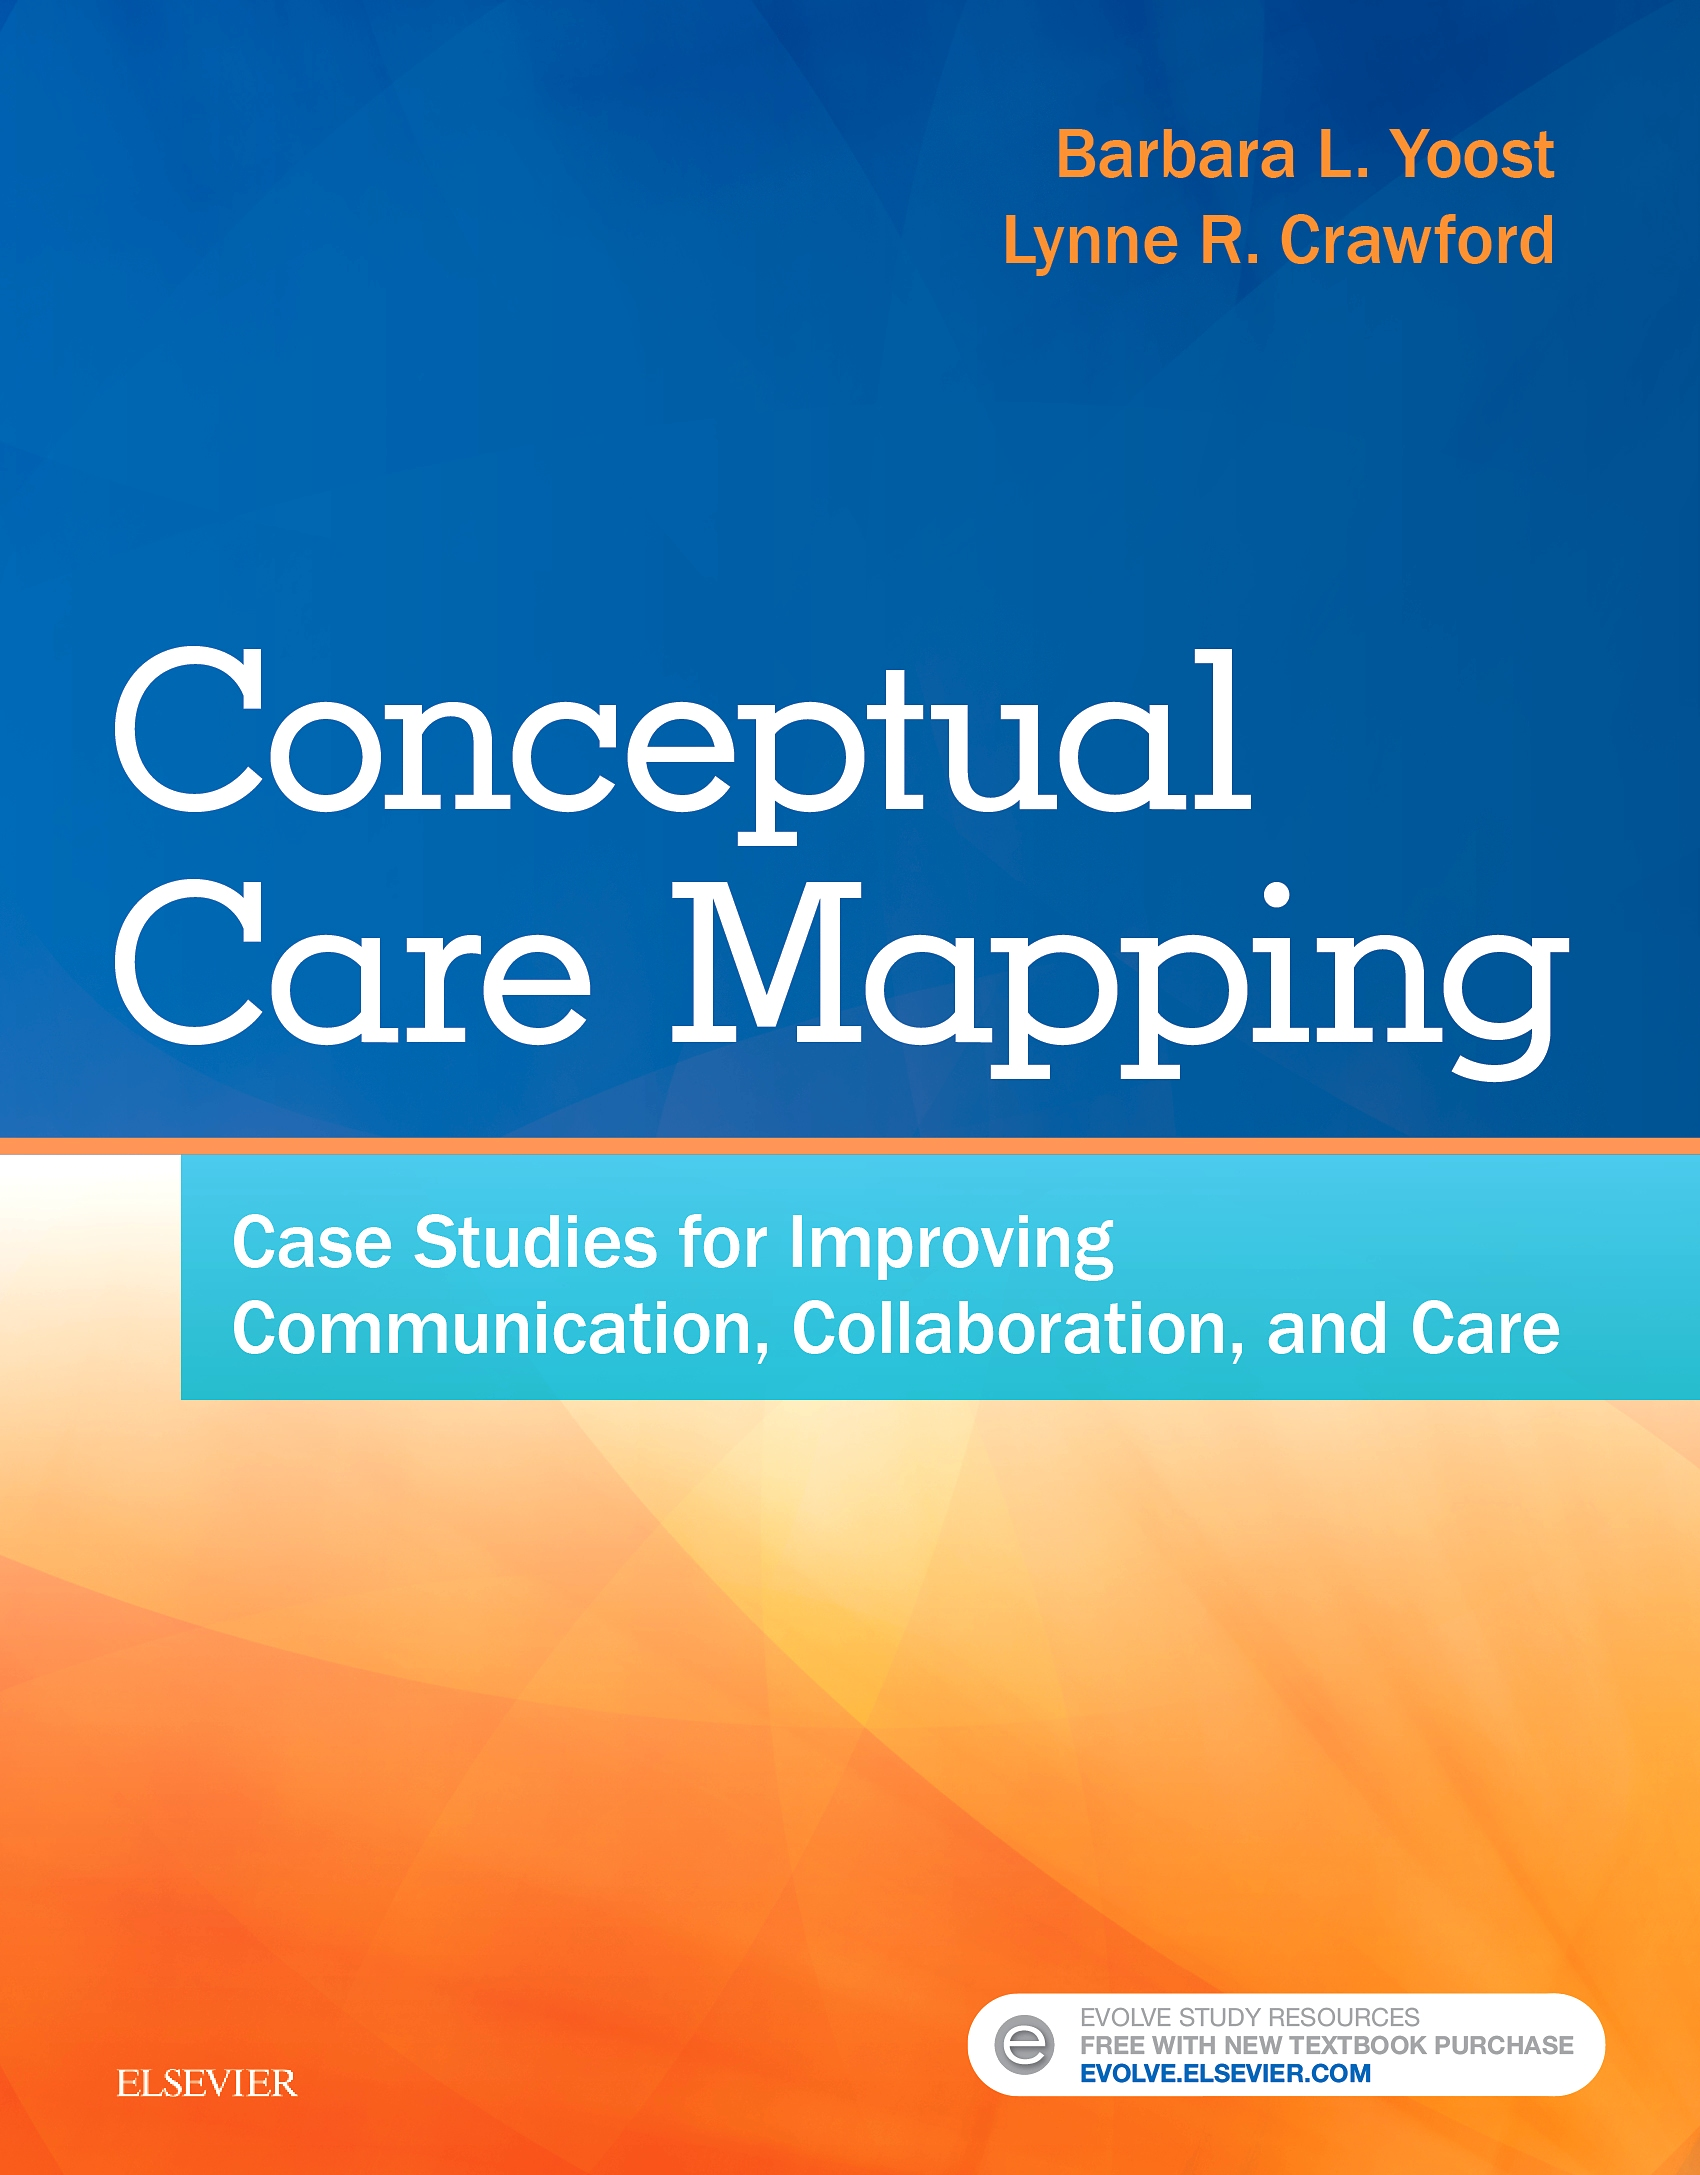 Evolve Resources for Conceptual Care Mapping